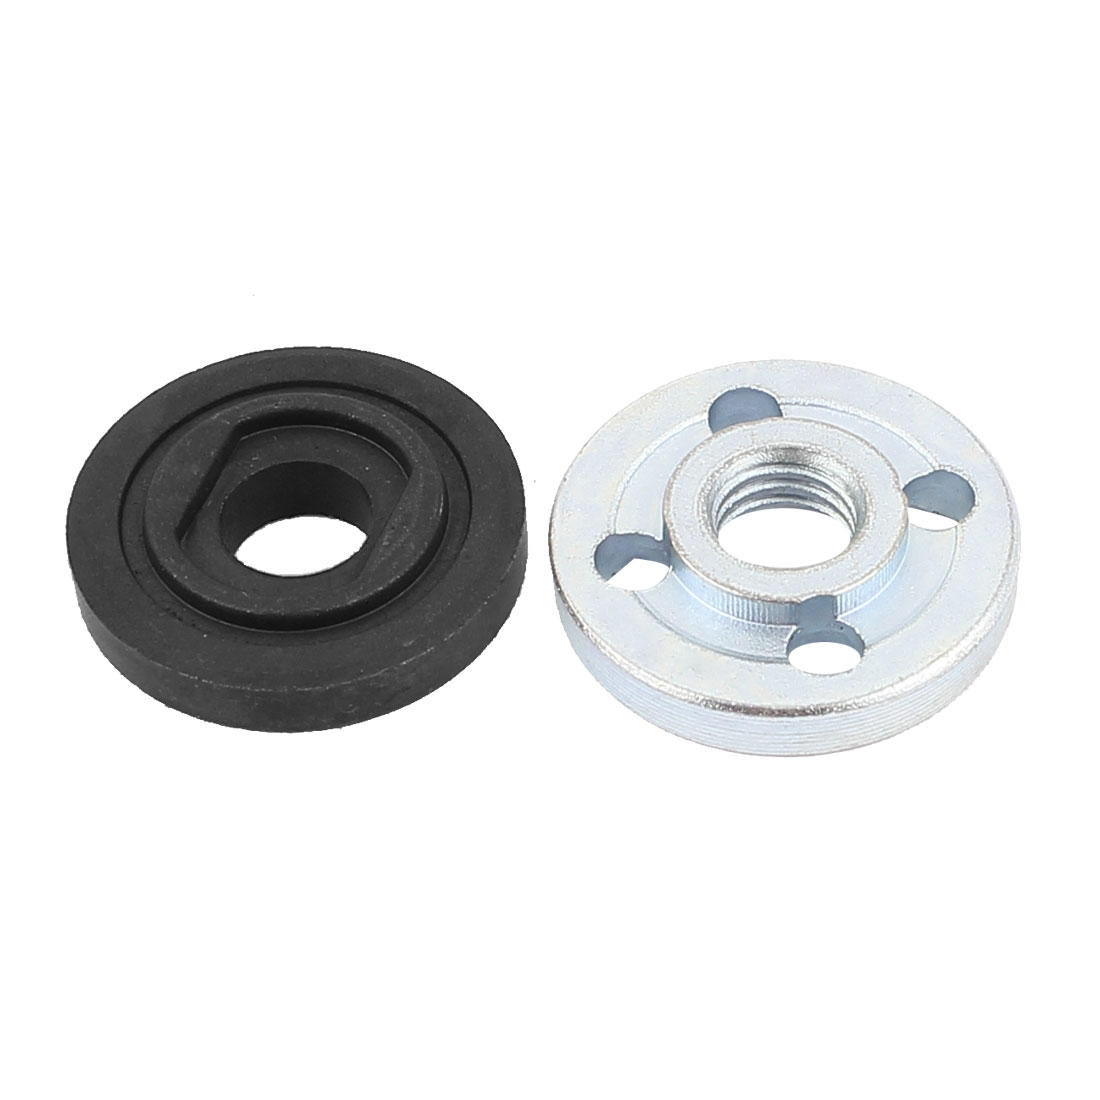 Electrical Angle Grinder Part Inner Outer Flange Replacement Set